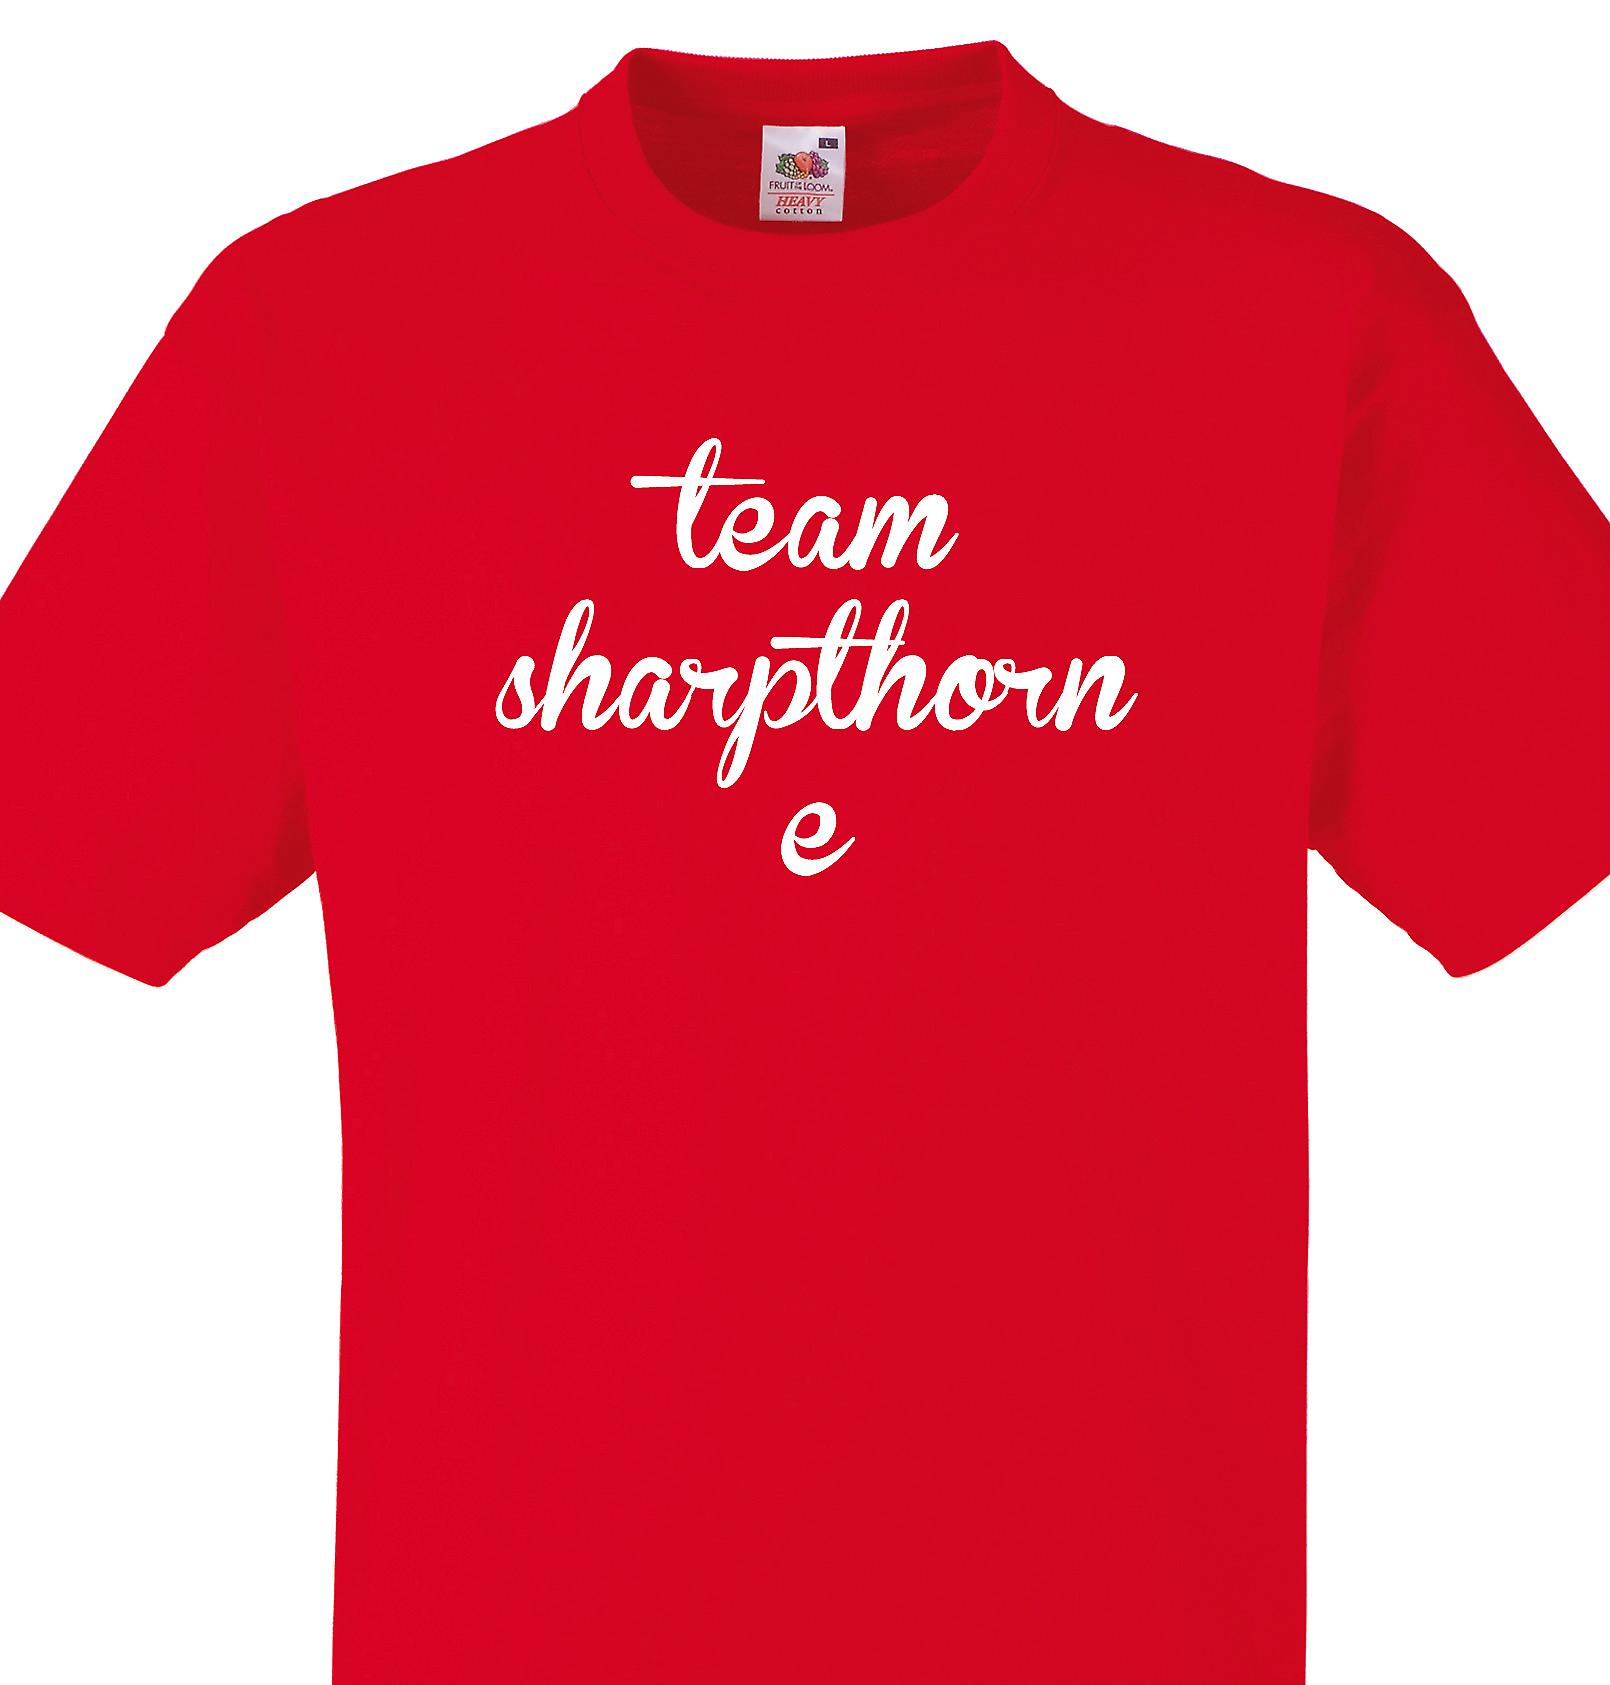 Team Sharpthorne Red T shirt